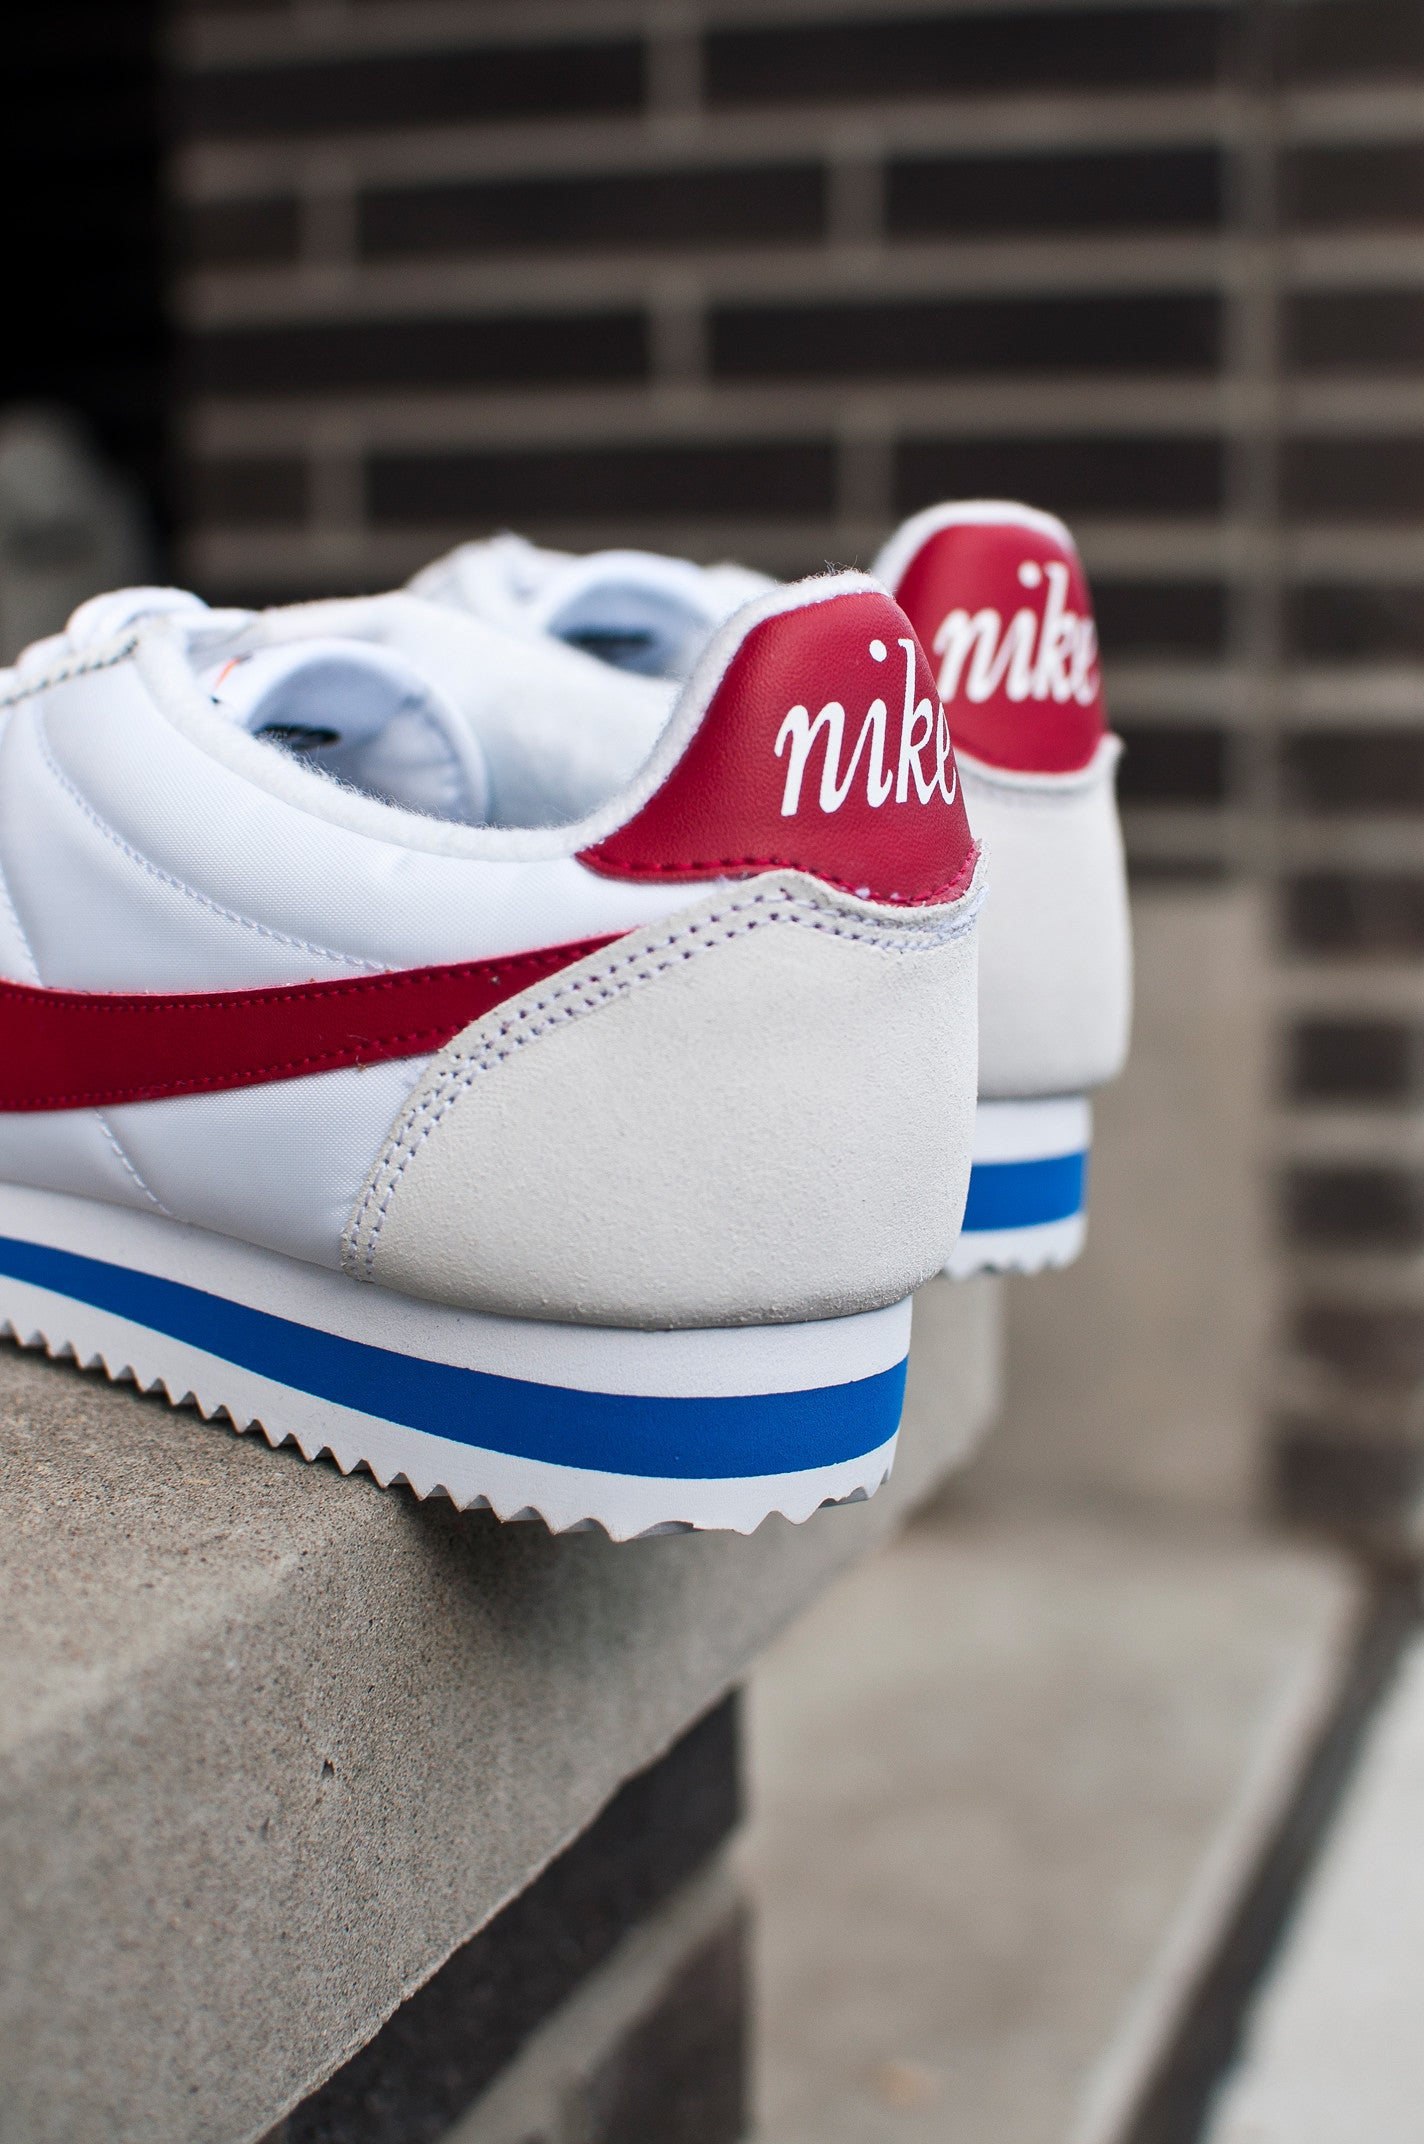 Nike Air Classic Cortez Premium White/Red/Royal 876873-101, 4